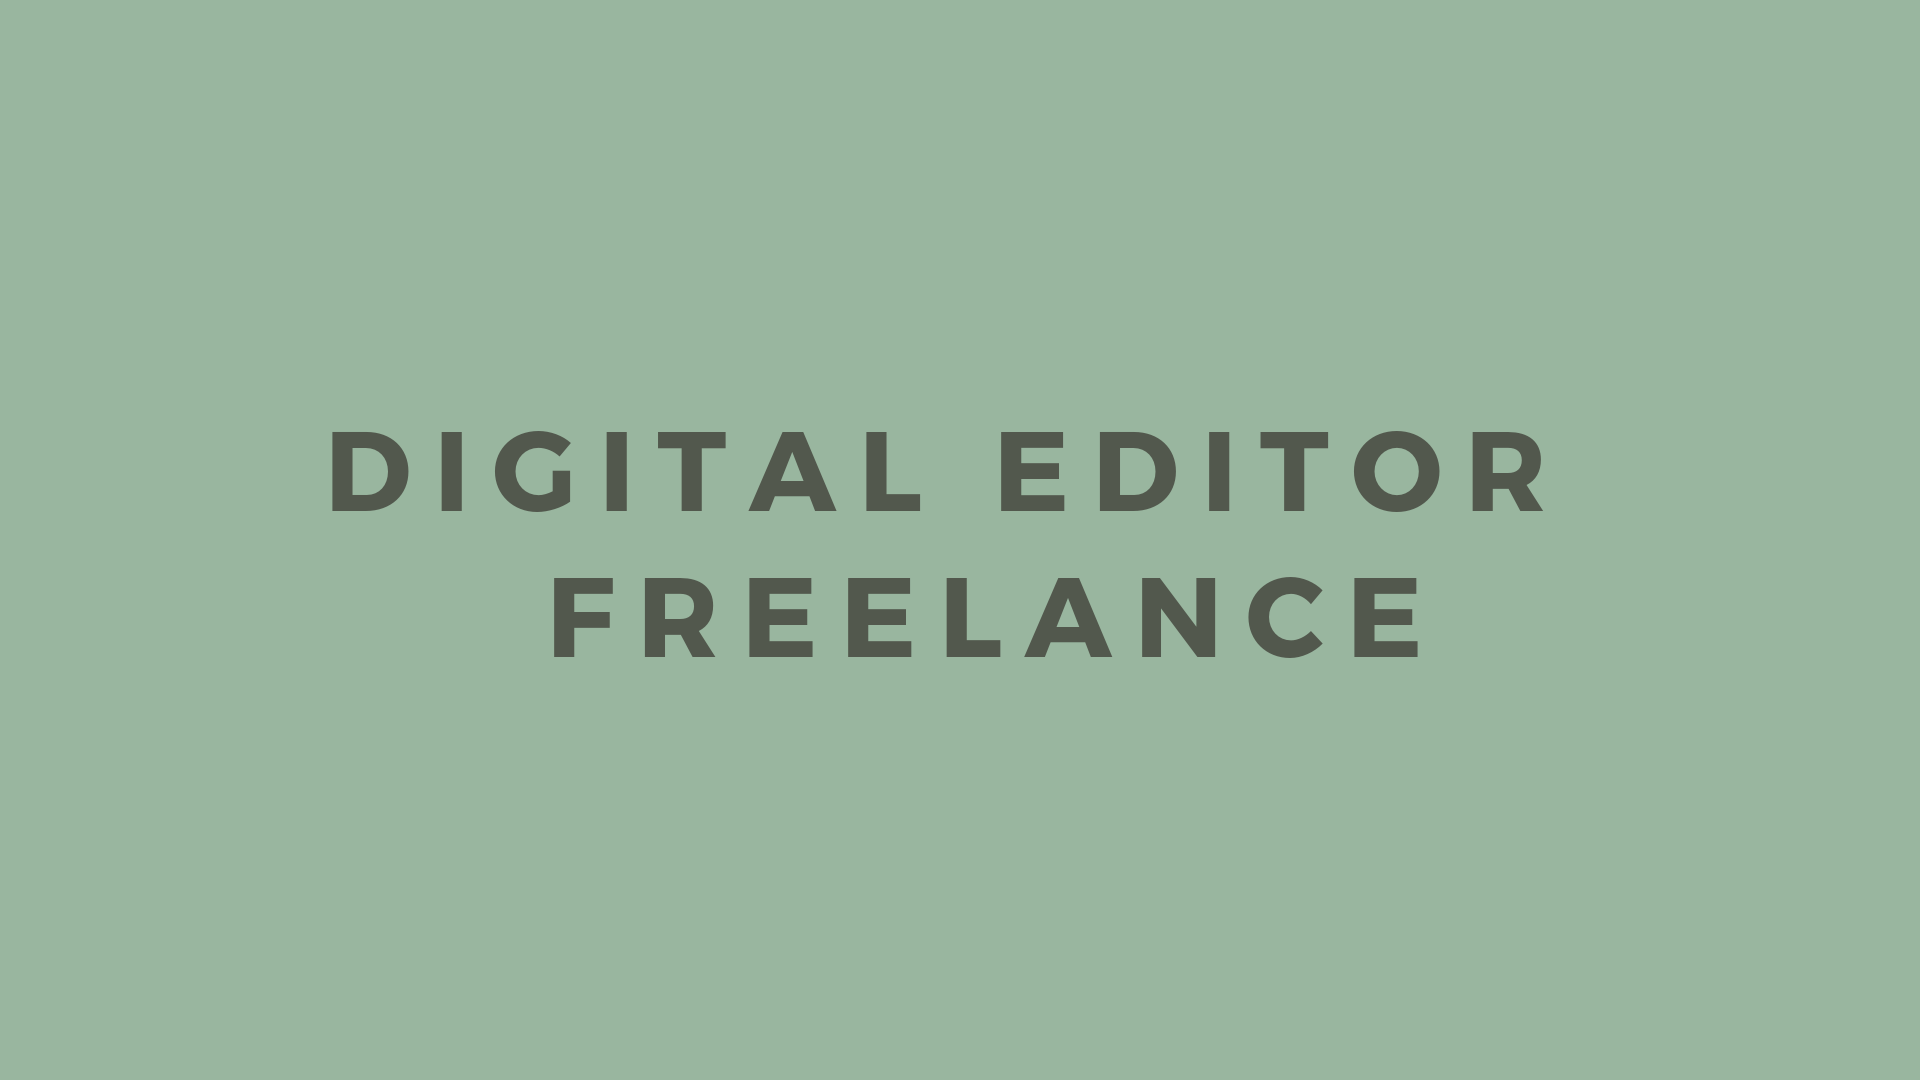 digital editor freelance